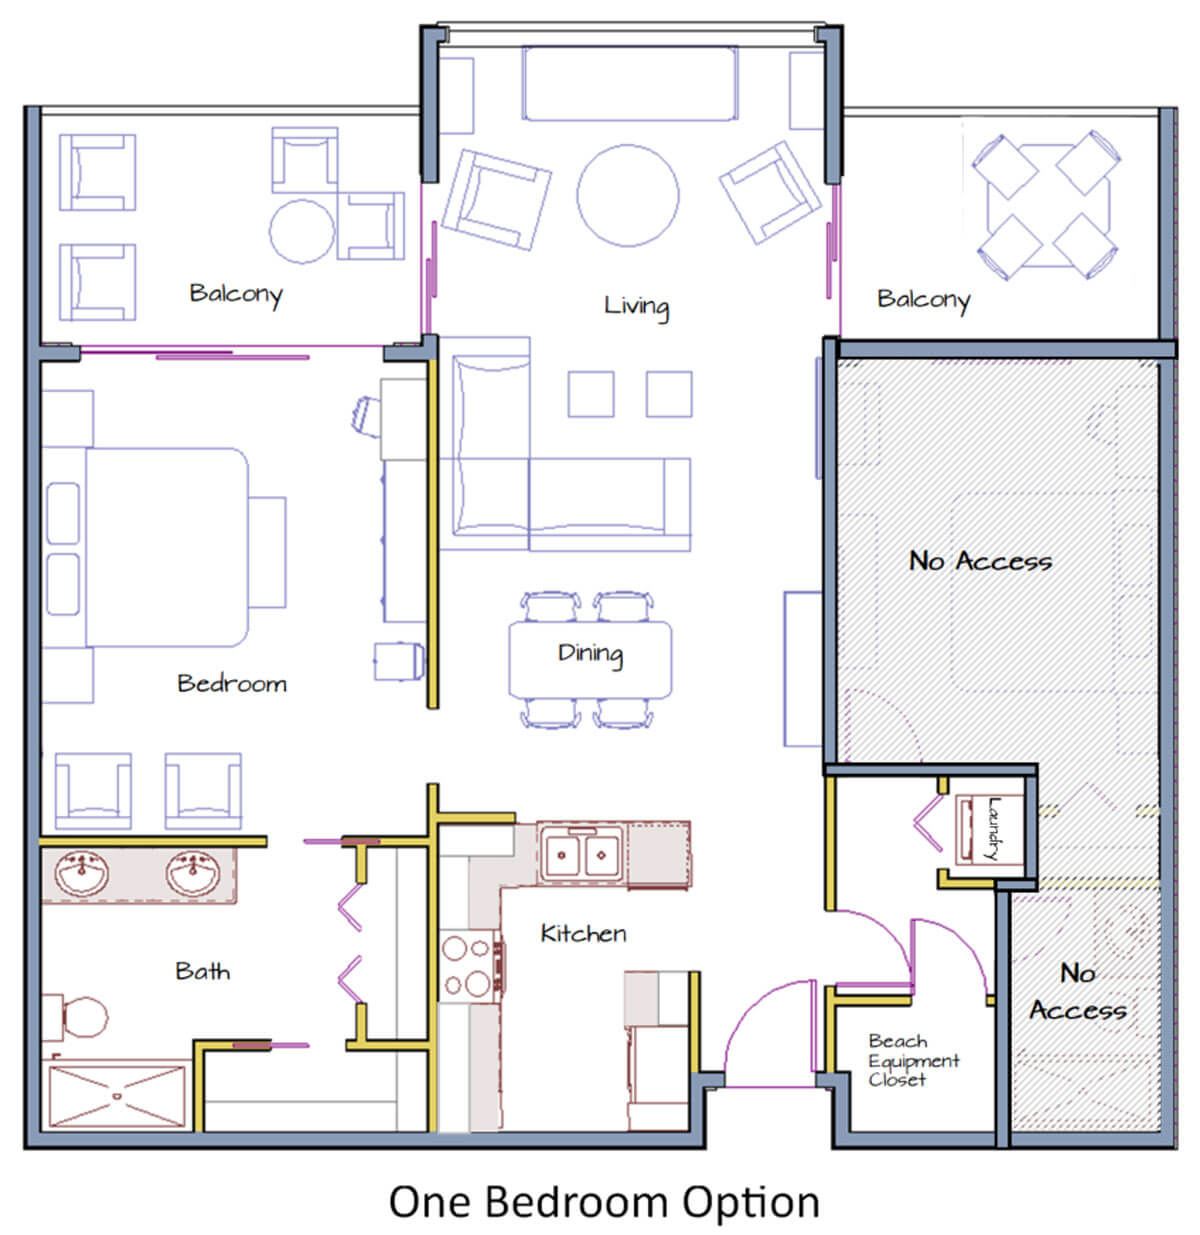 Two Bedroom Option